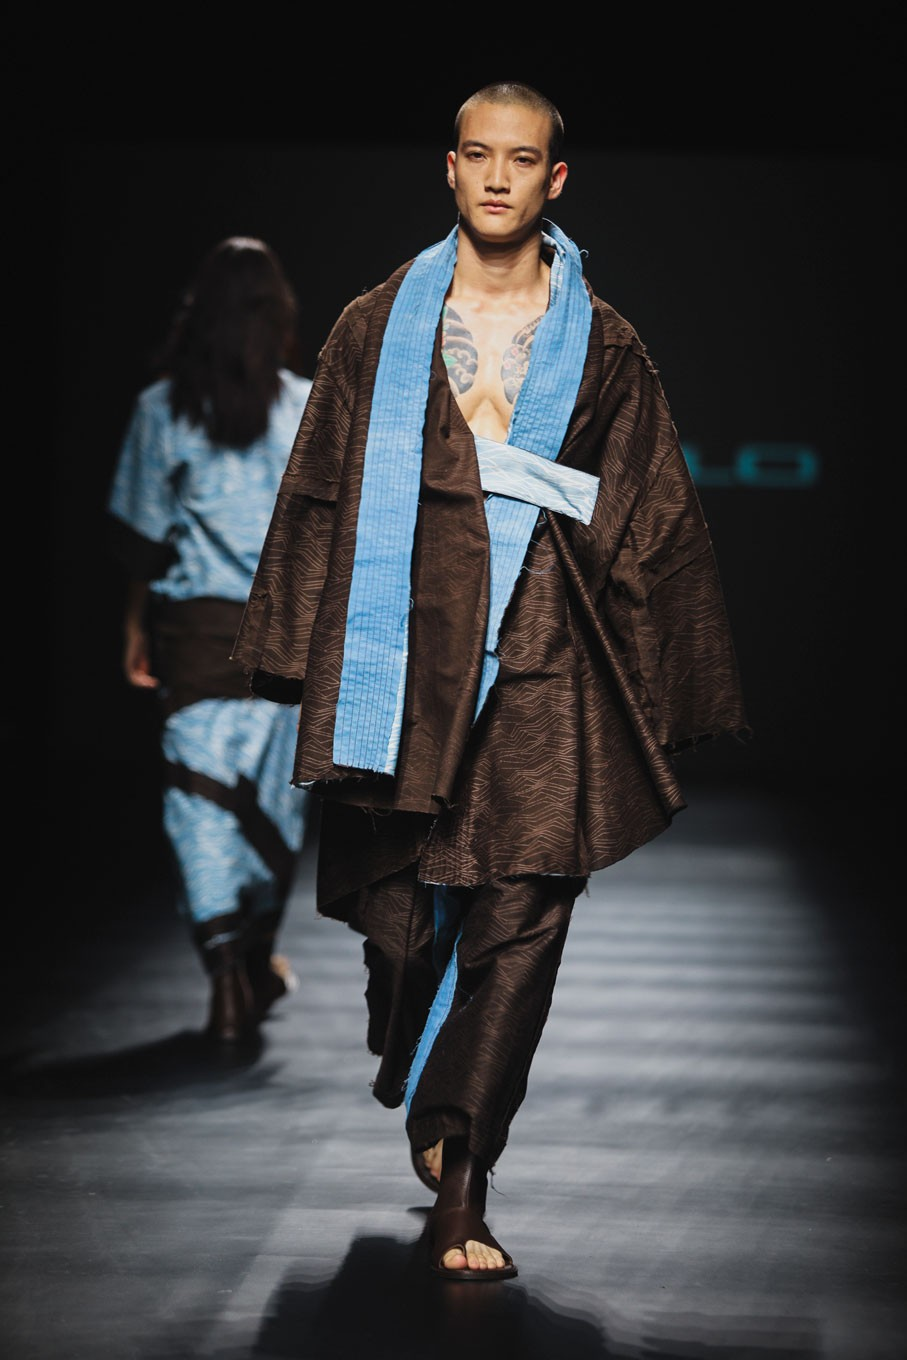 The line was inspired by the lost Tibetan Kingdom of Mustang and first showcased at the 2017 Amazon Fashion Week Tokyo, in October.